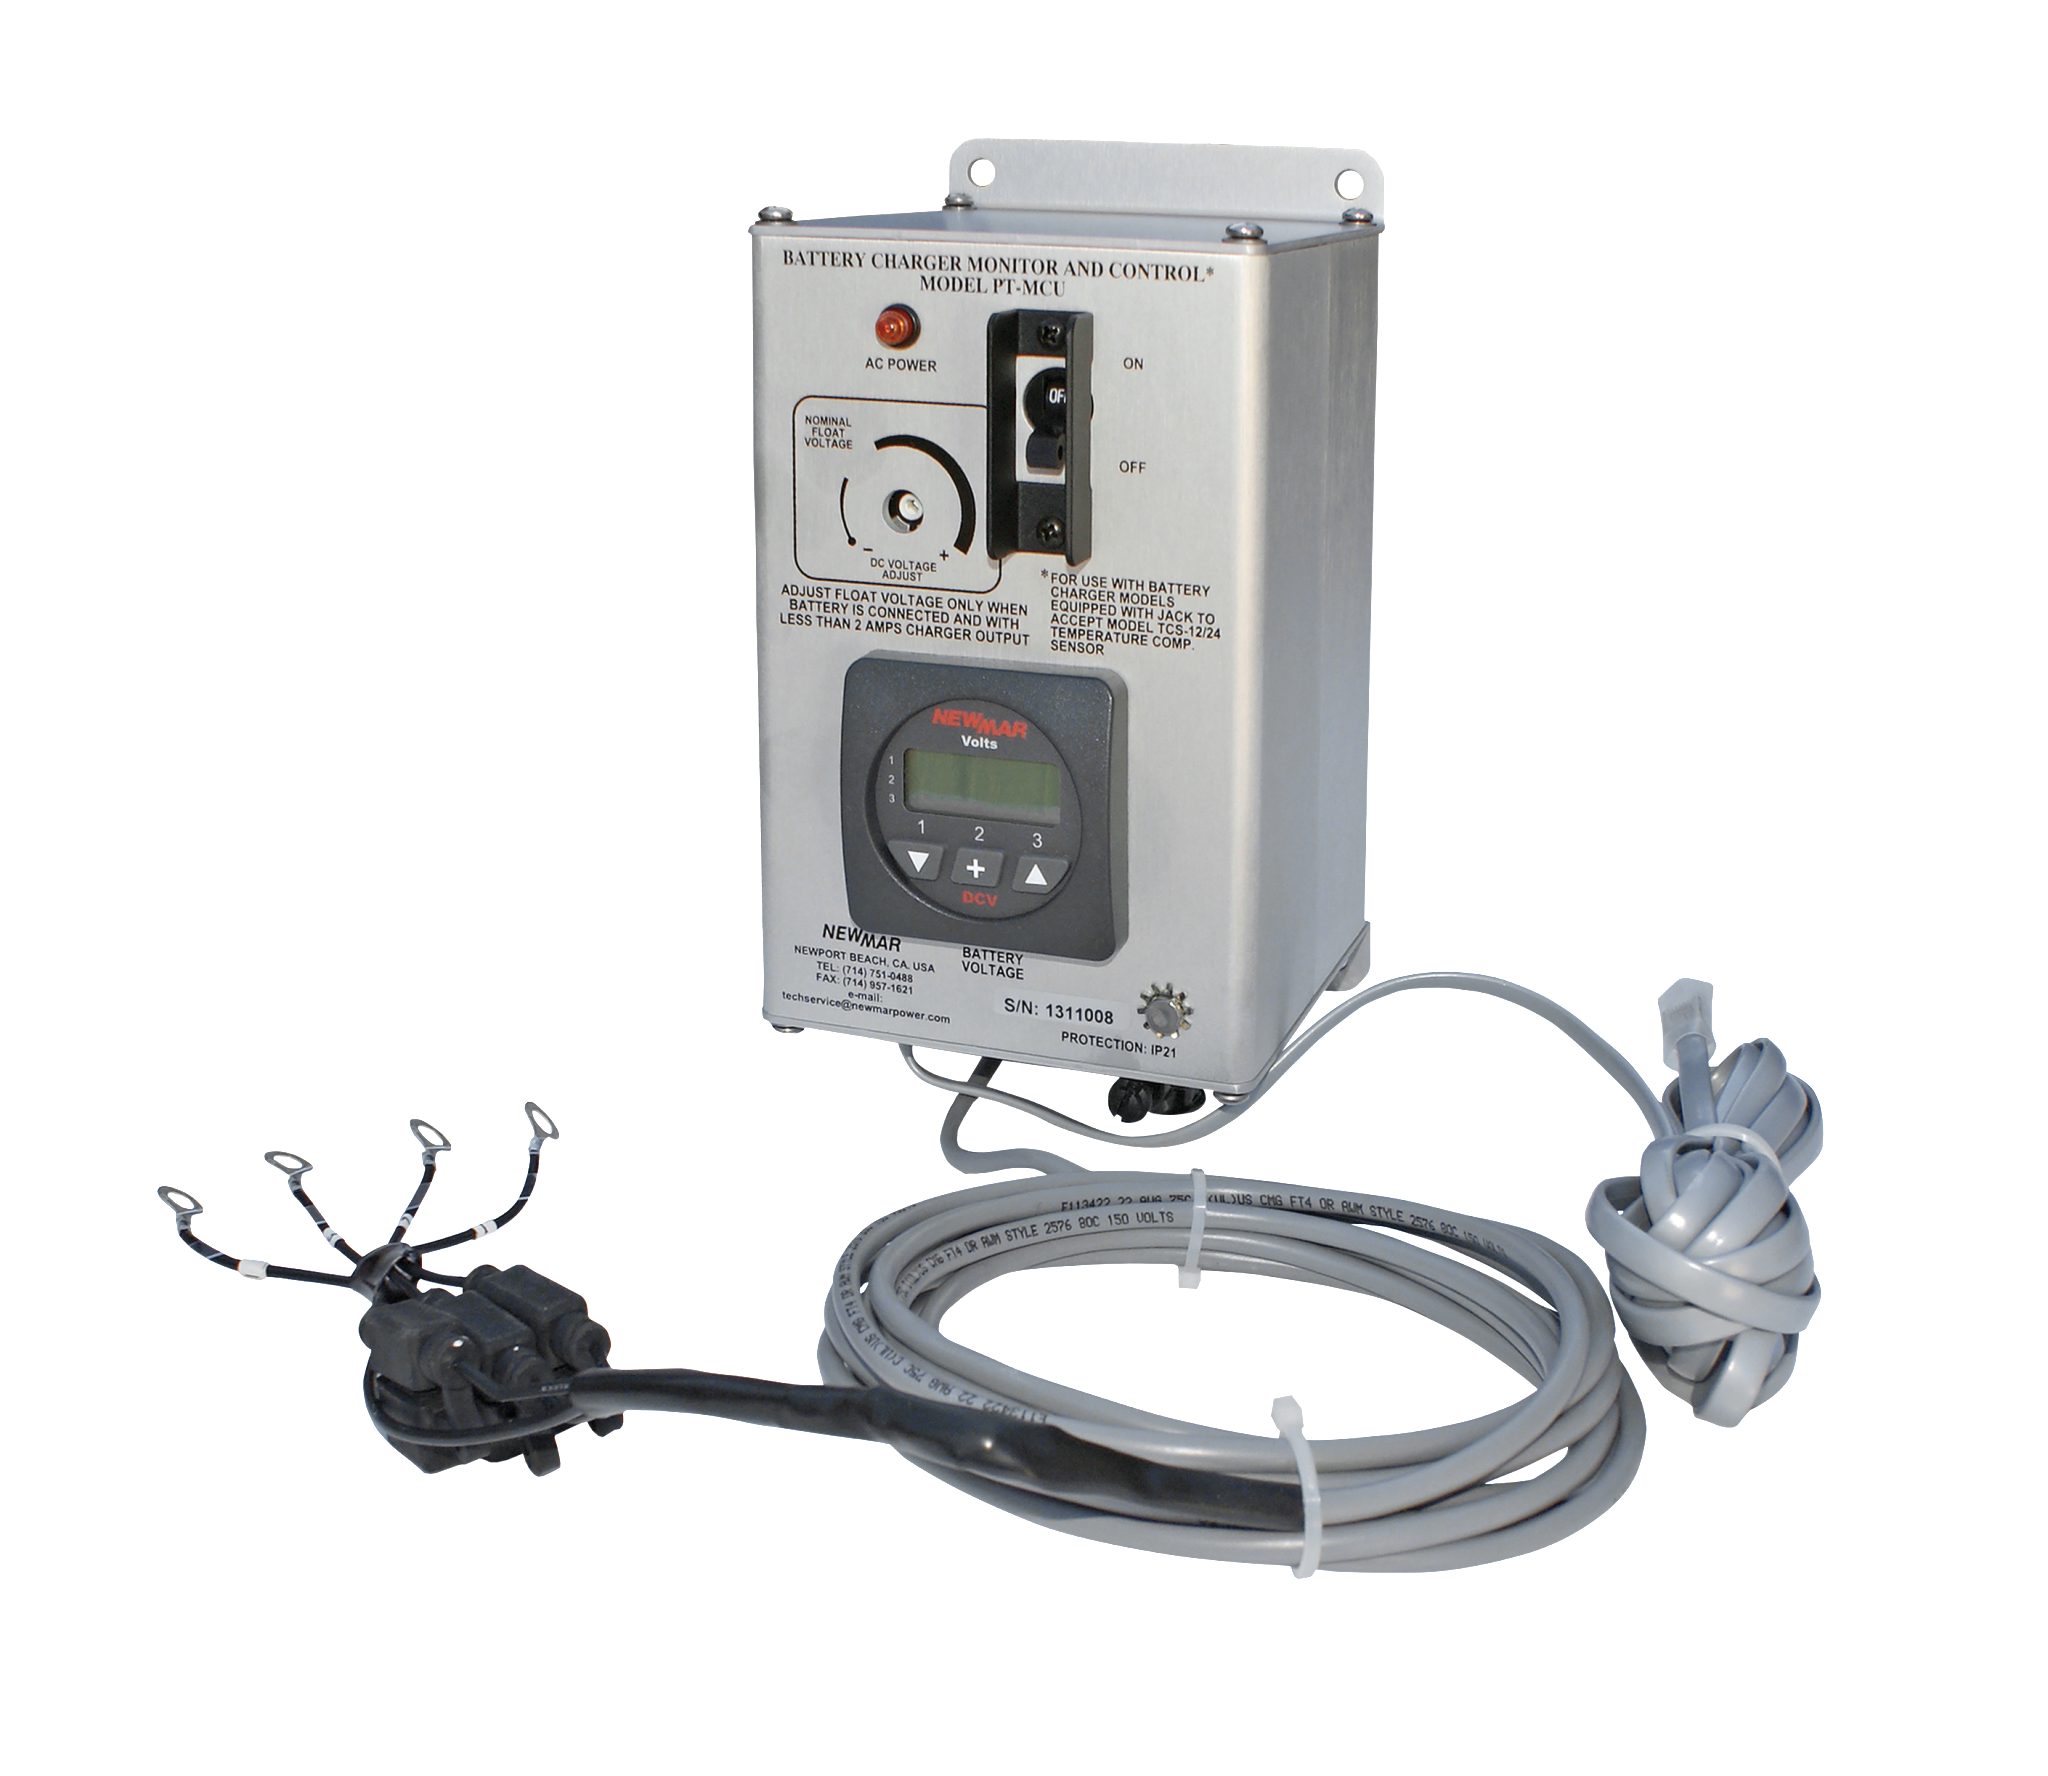 Newmar DC Power Onboard Phase Three Monitor and Control Unit for Marine Applications